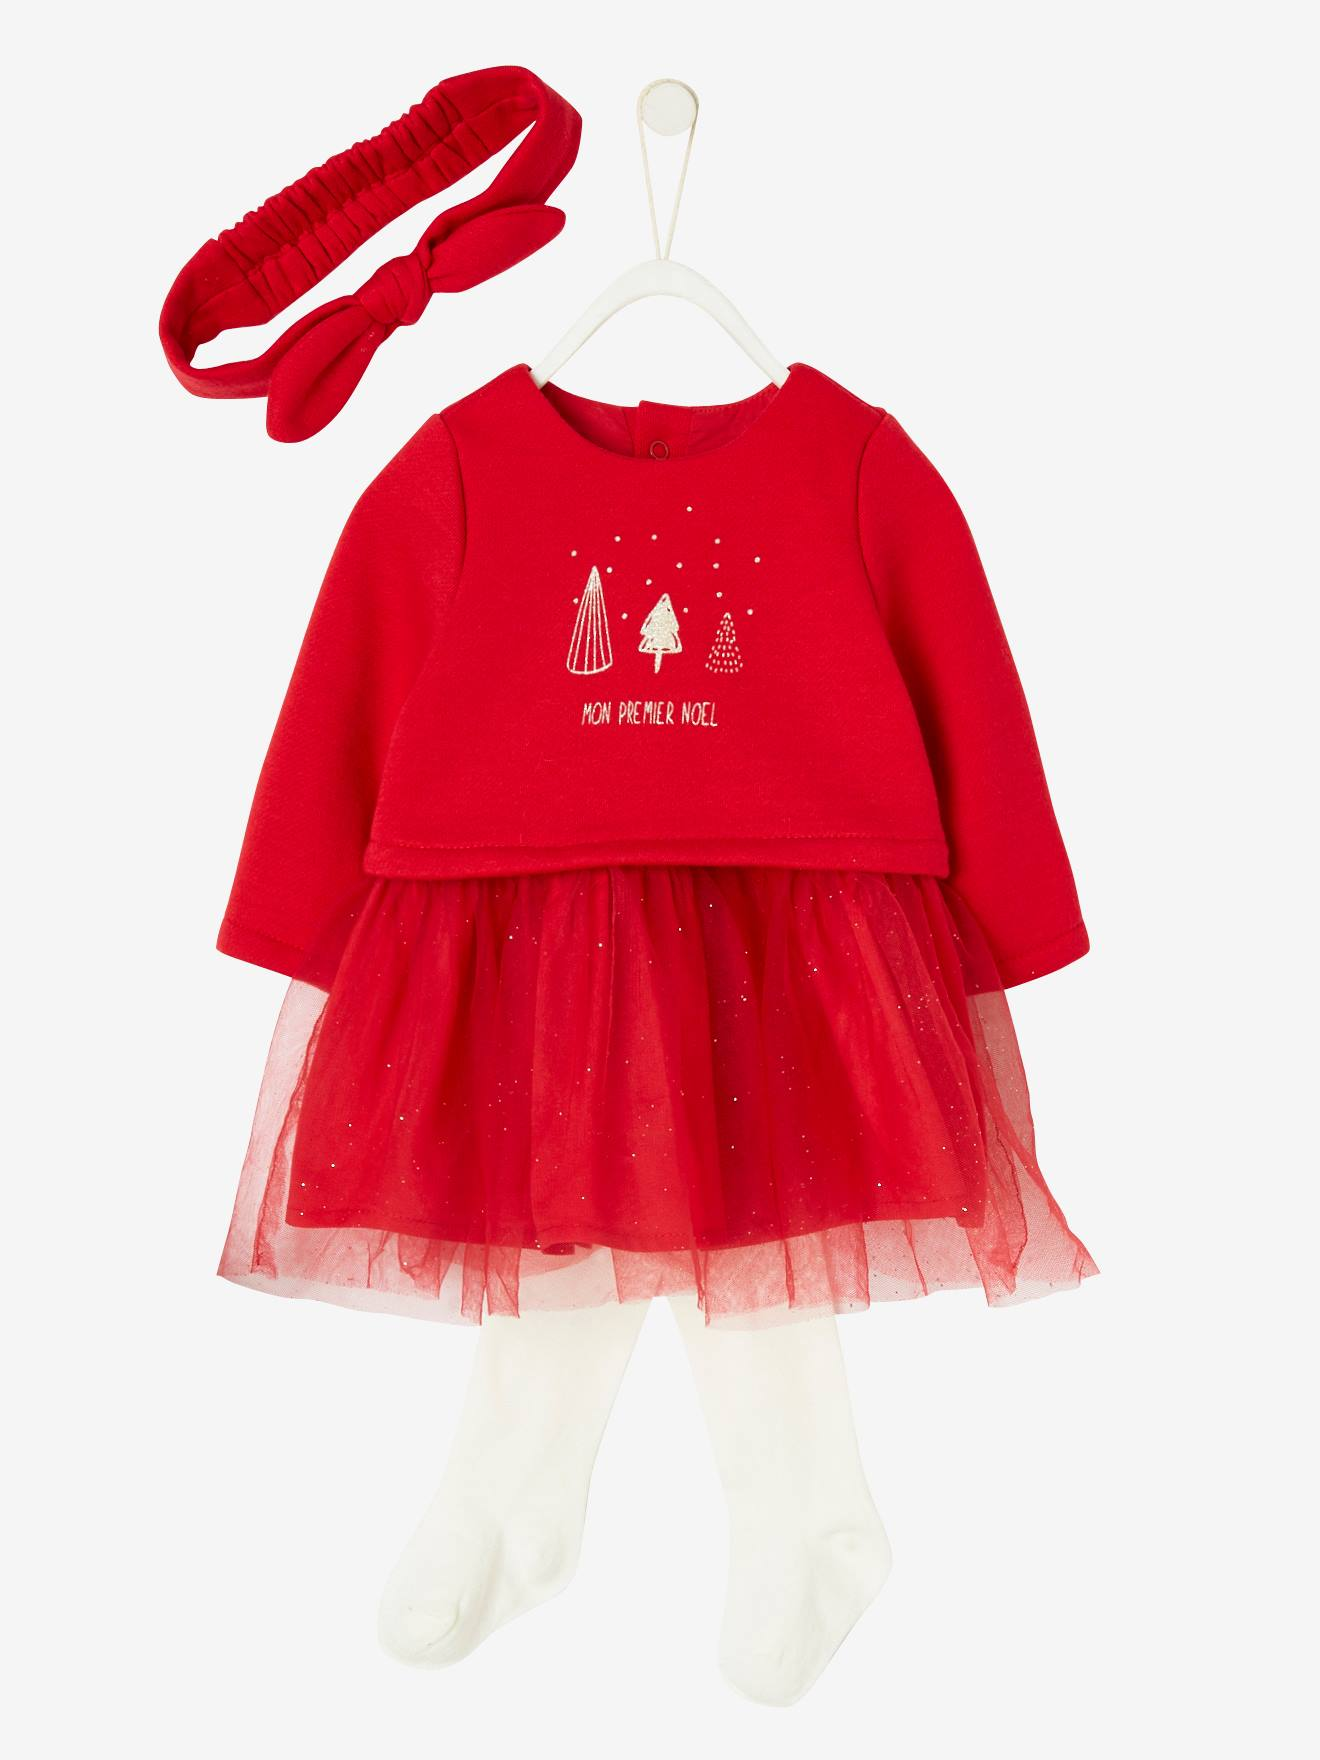 Christmas Outfit Dress Tights Headband For Newborn Baby Red Dark Solid With Design Baby